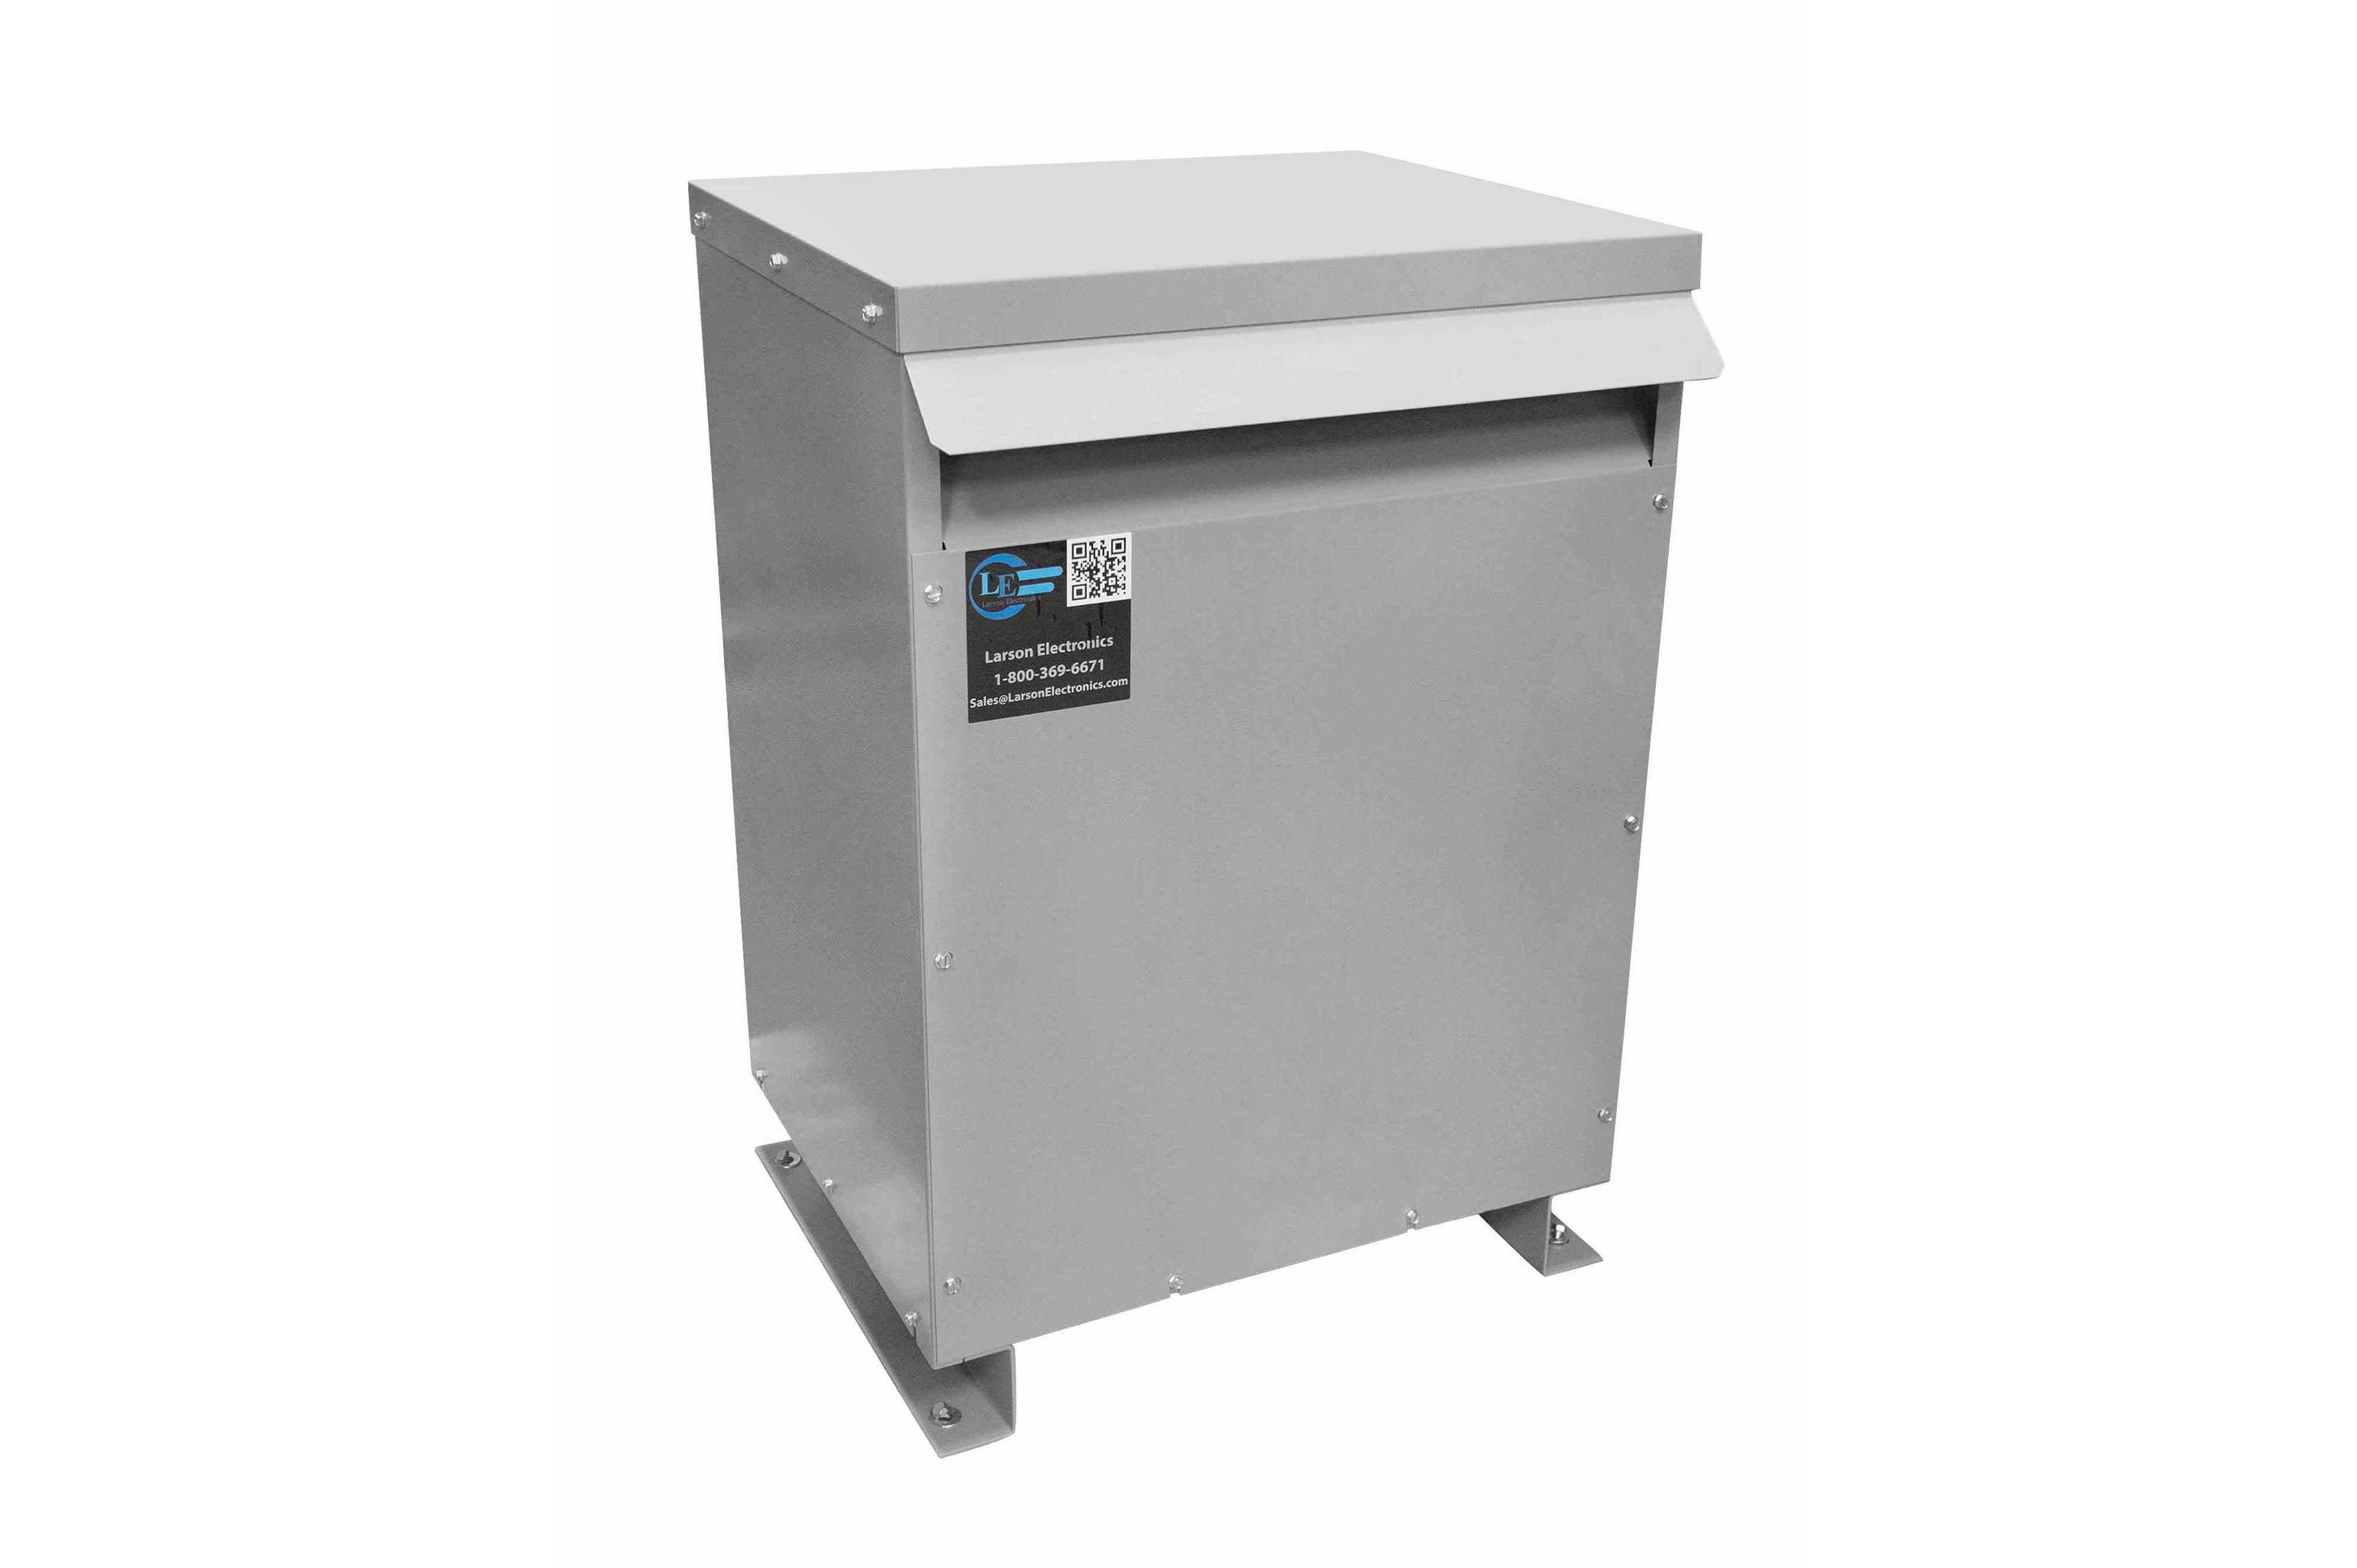 9 kVA 3PH Isolation Transformer, 380V Wye Primary, 240V Delta Secondary, N3R, Ventilated, 60 Hz